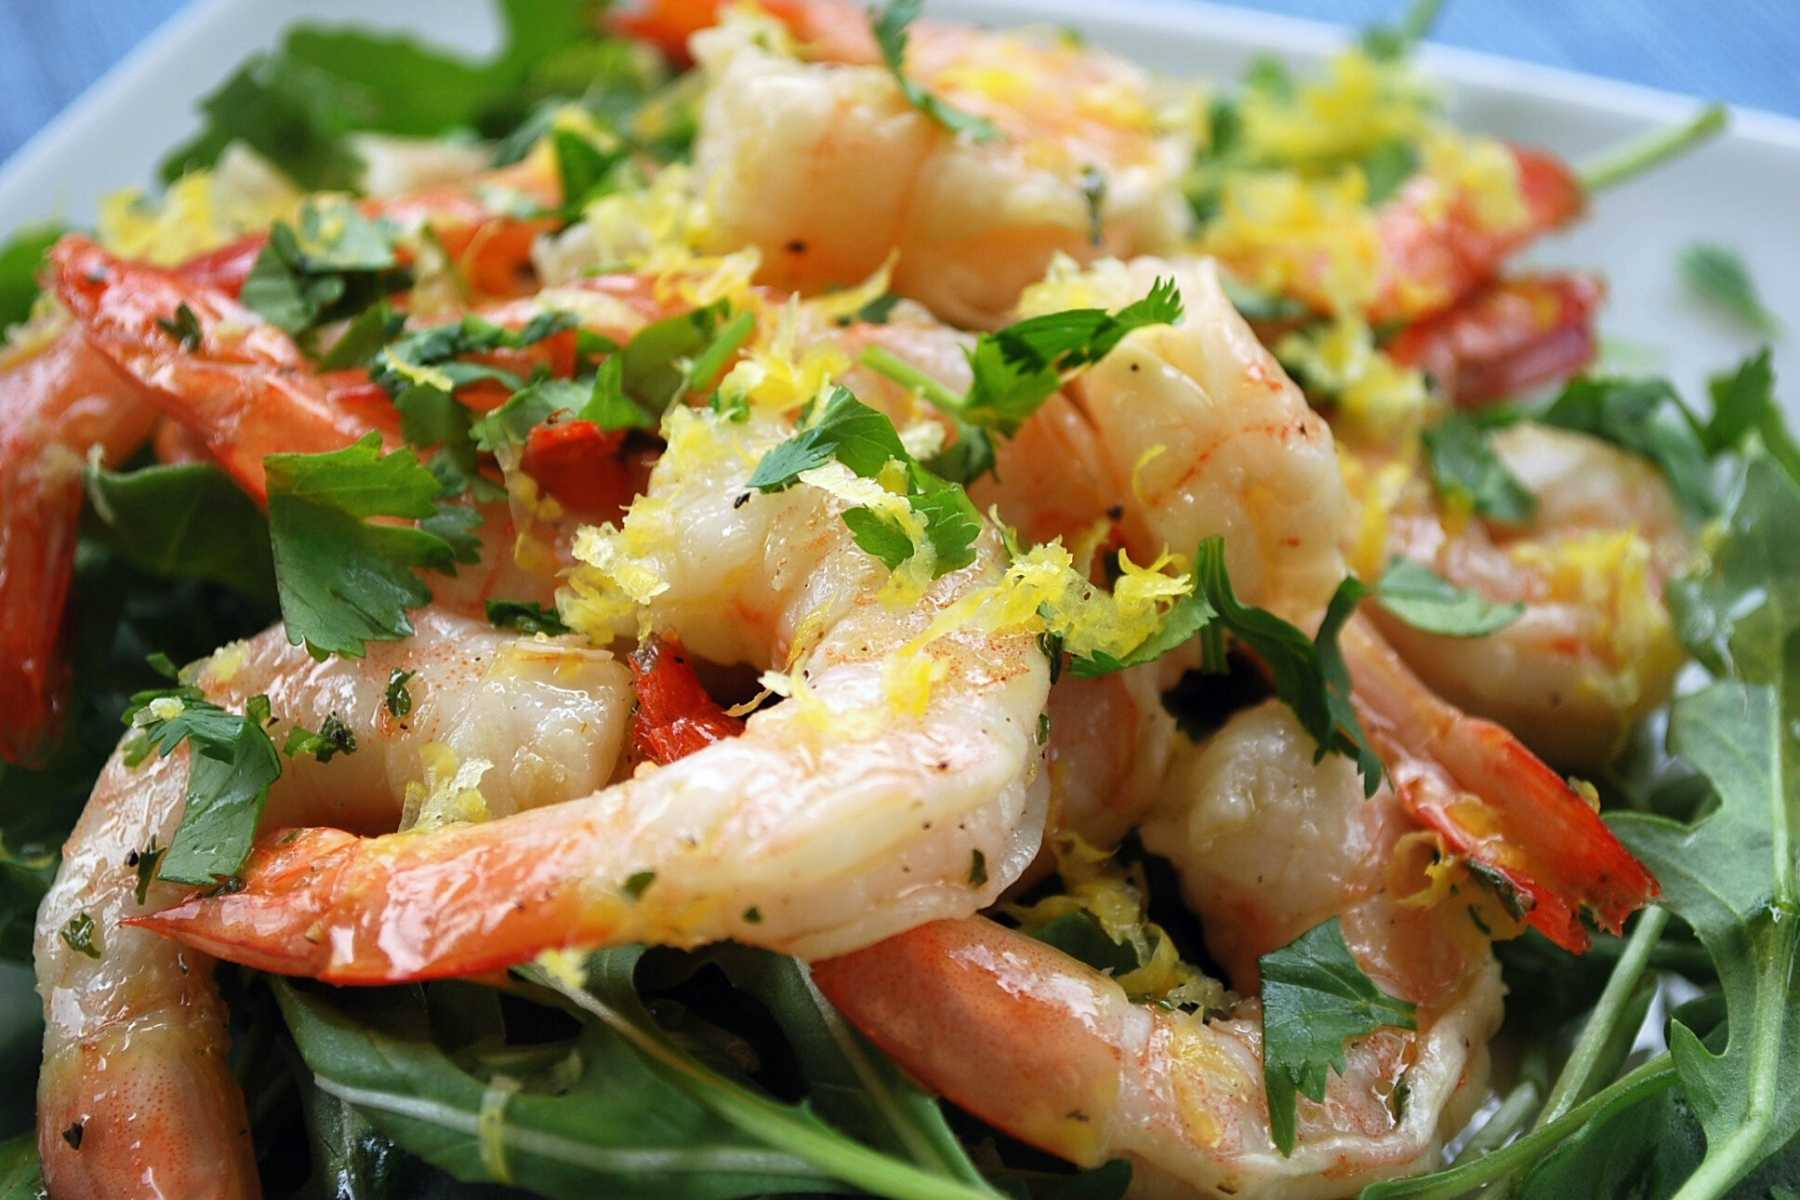 close up of marinated shrimp on a plate with greens and fresh herbs